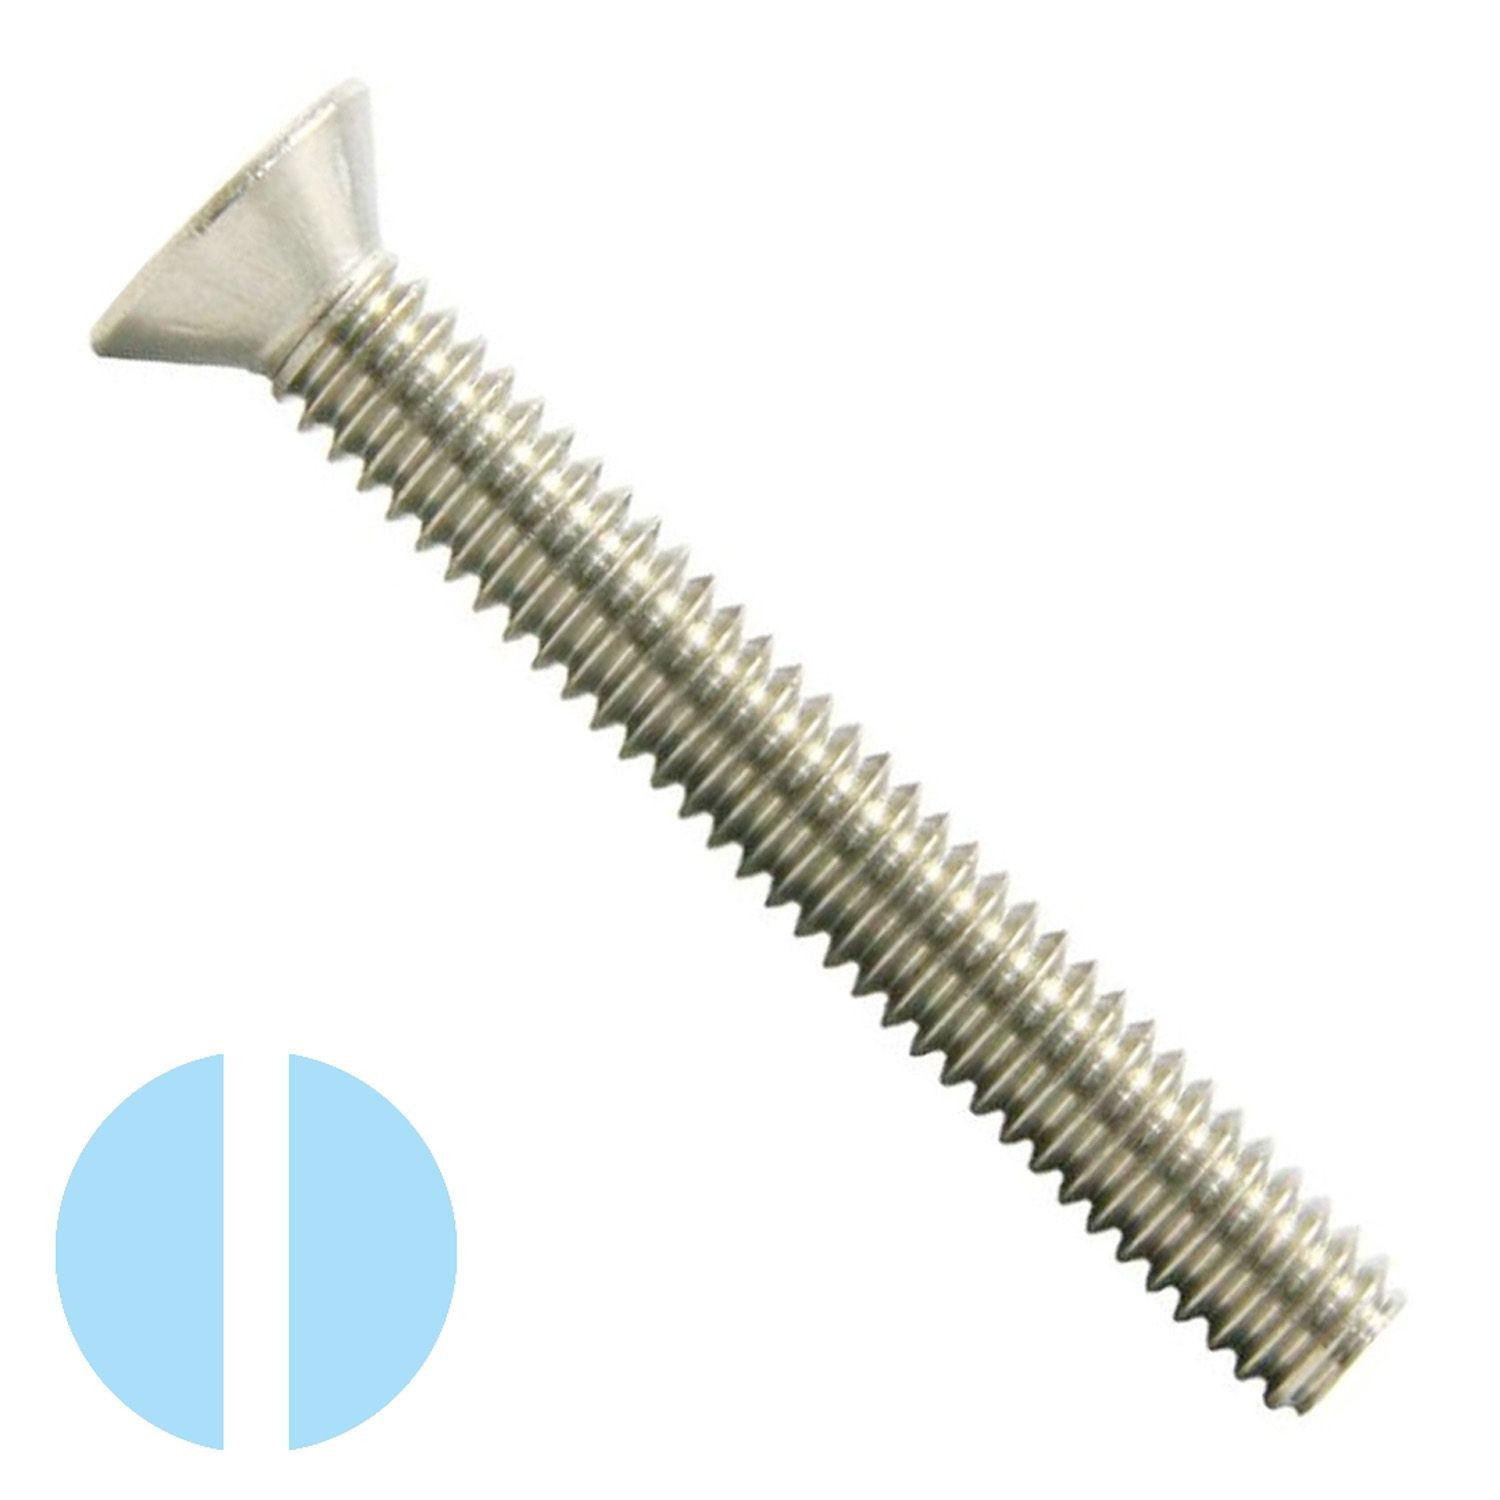 "#10-32 x 2"" Stainless Steel Slotted Flat Head Machine Screw 18-8"